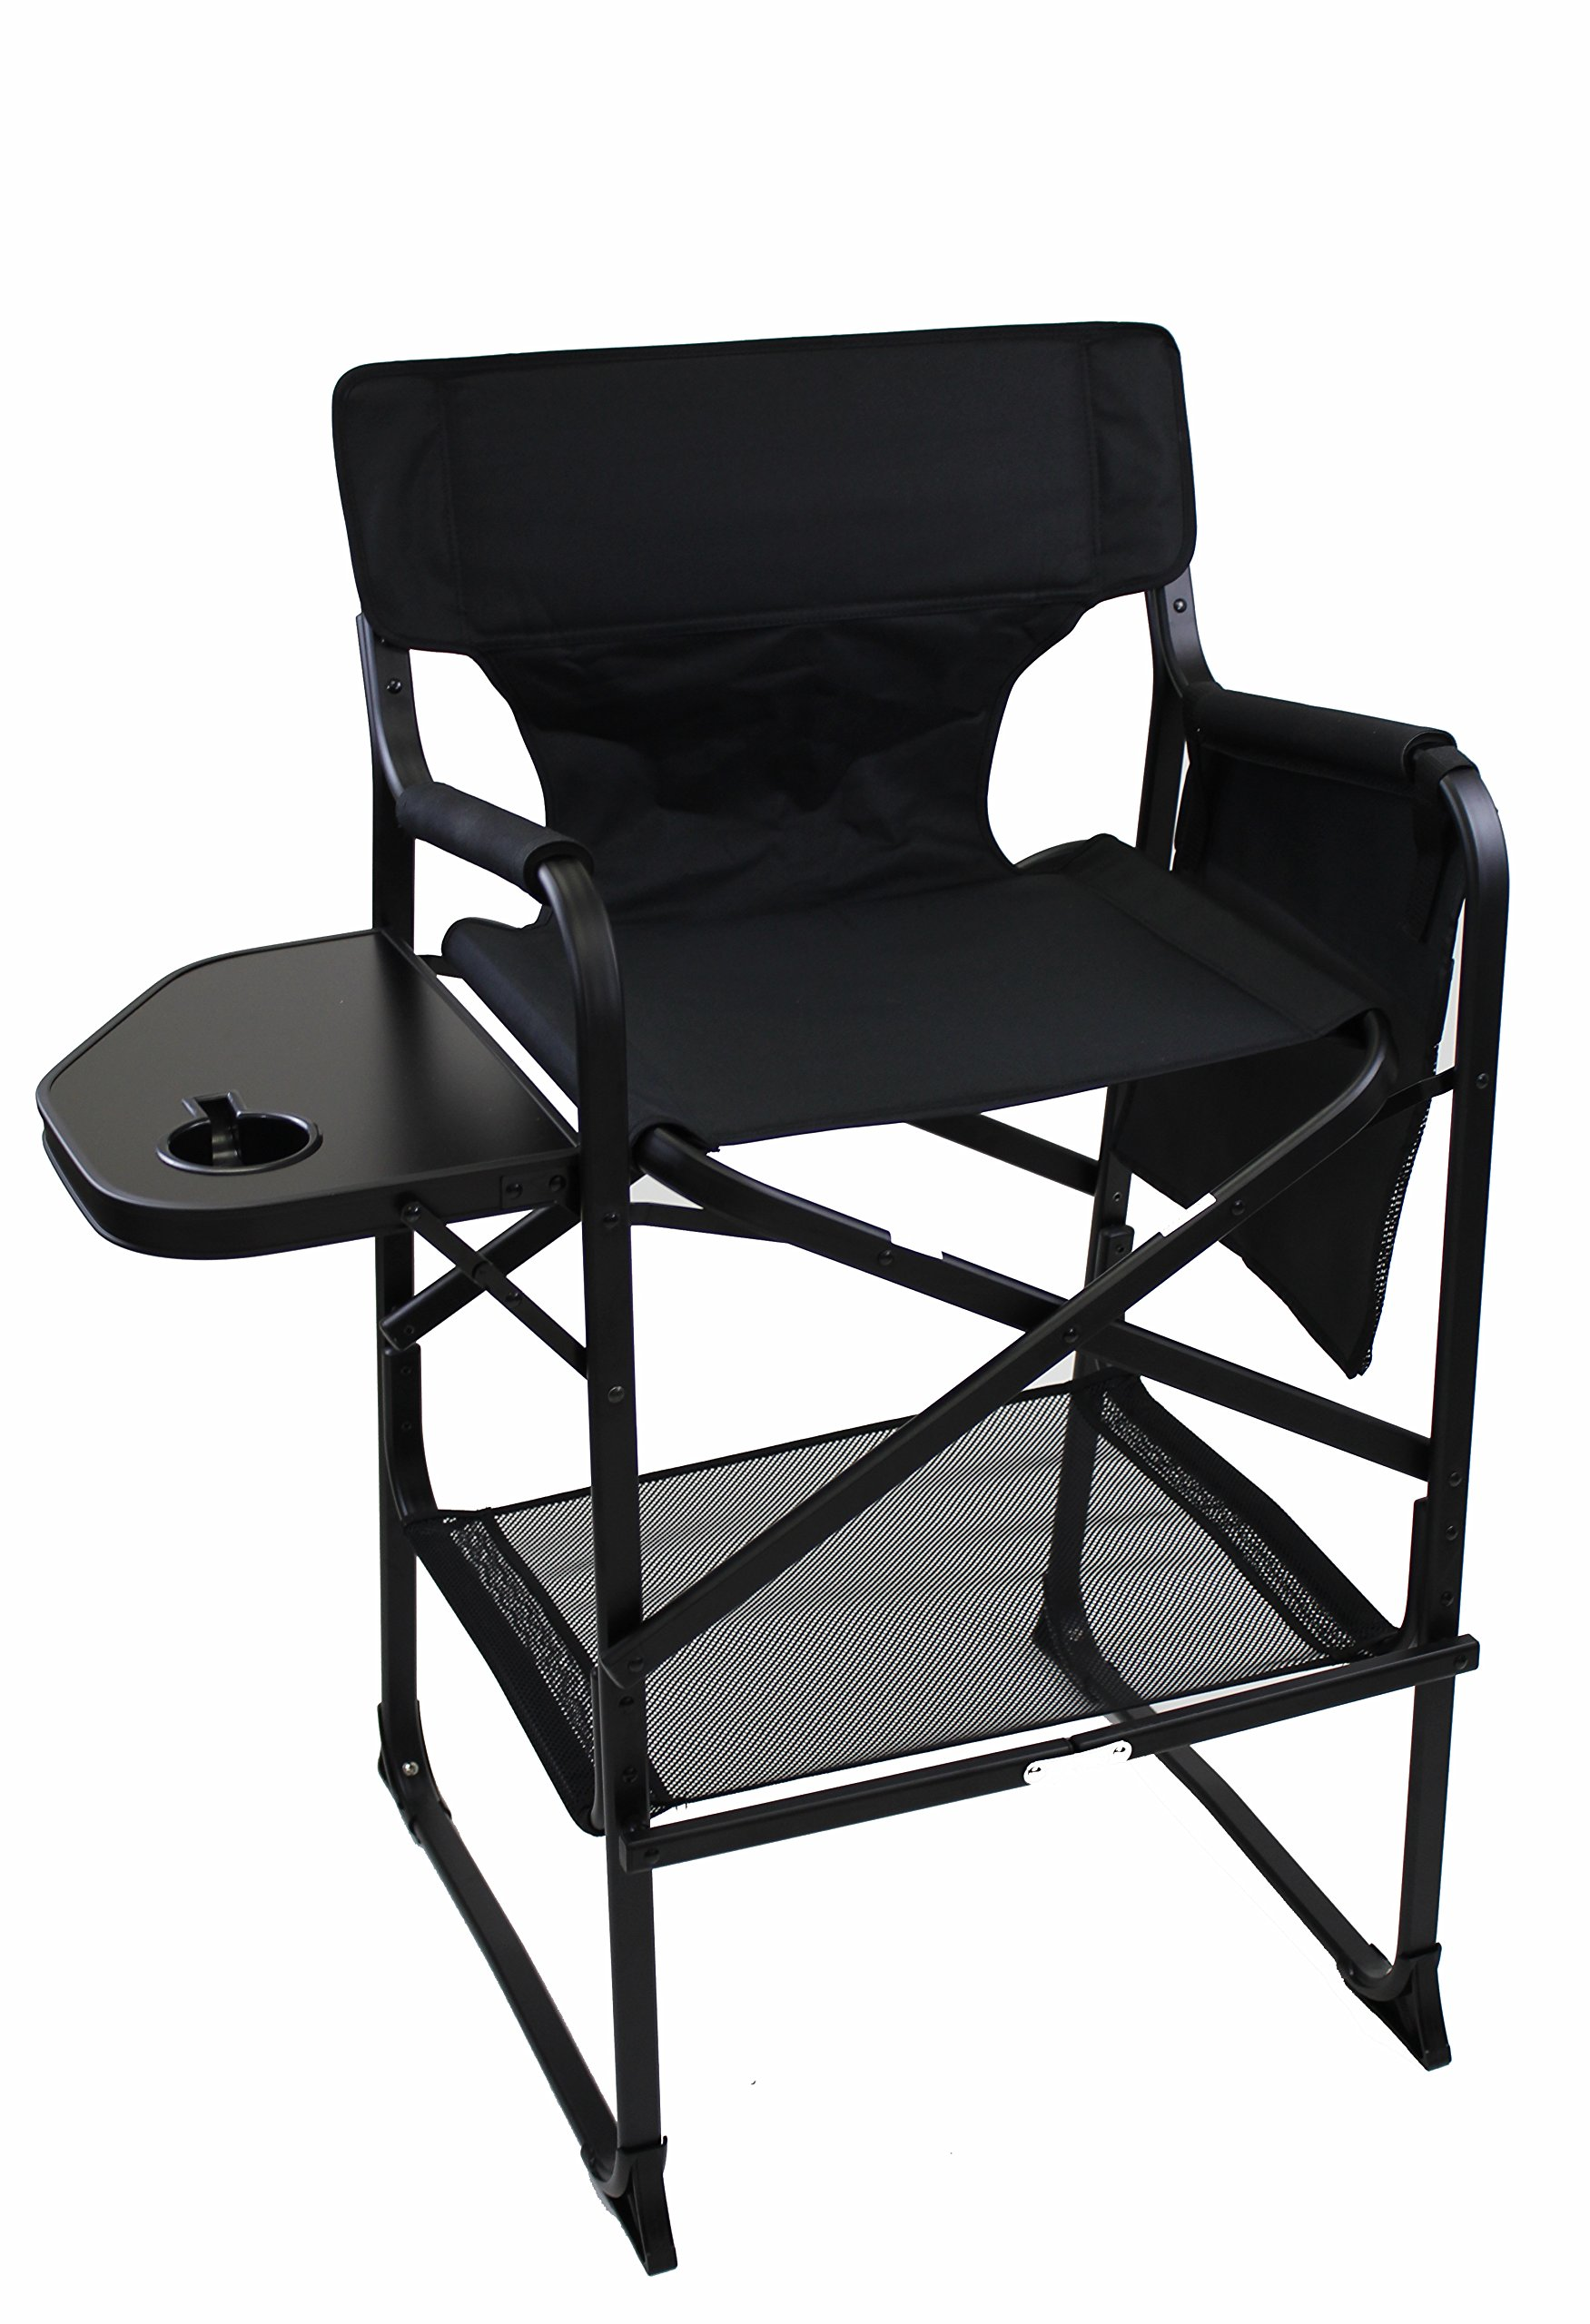 World Outdoor Products LIGHTWEIGHT PROFESSIONAL EDITION Tall Directors Chair Side Table with Cup Holder, Automatic Footrest and Side Bag by World Outdoor Products (Image #1)